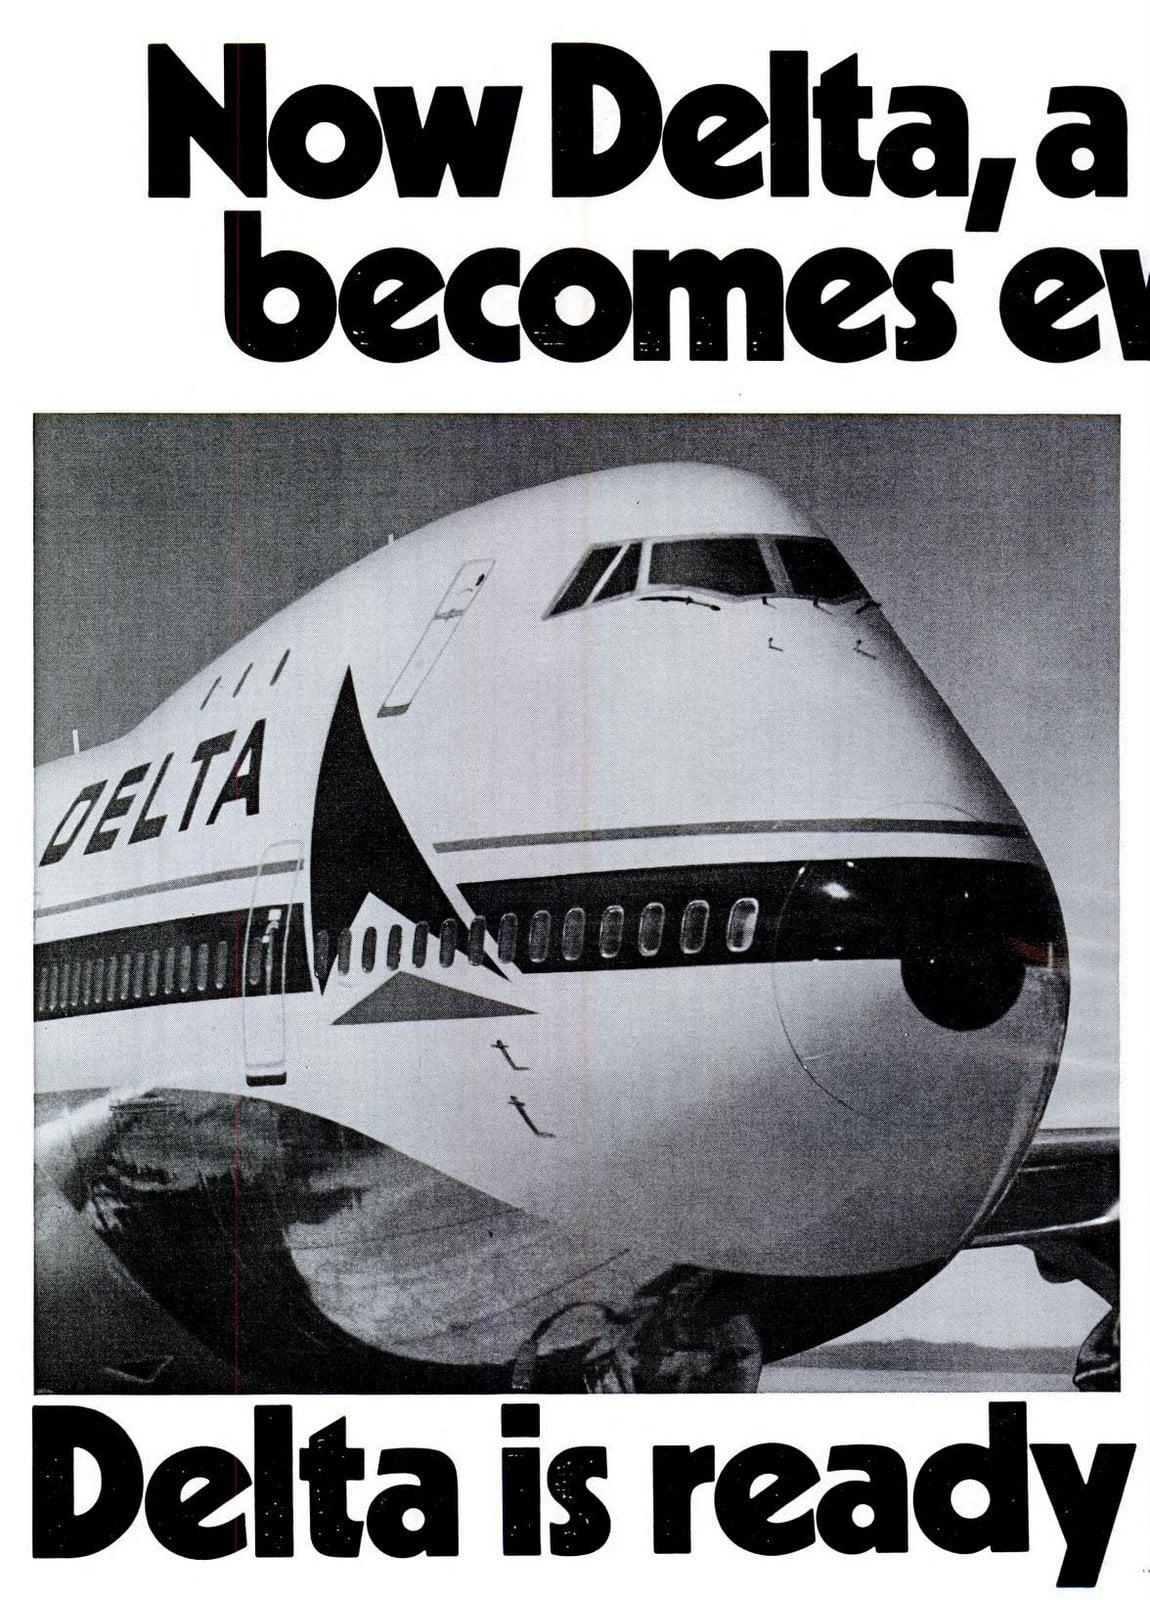 Delta is ready when you are (1972)